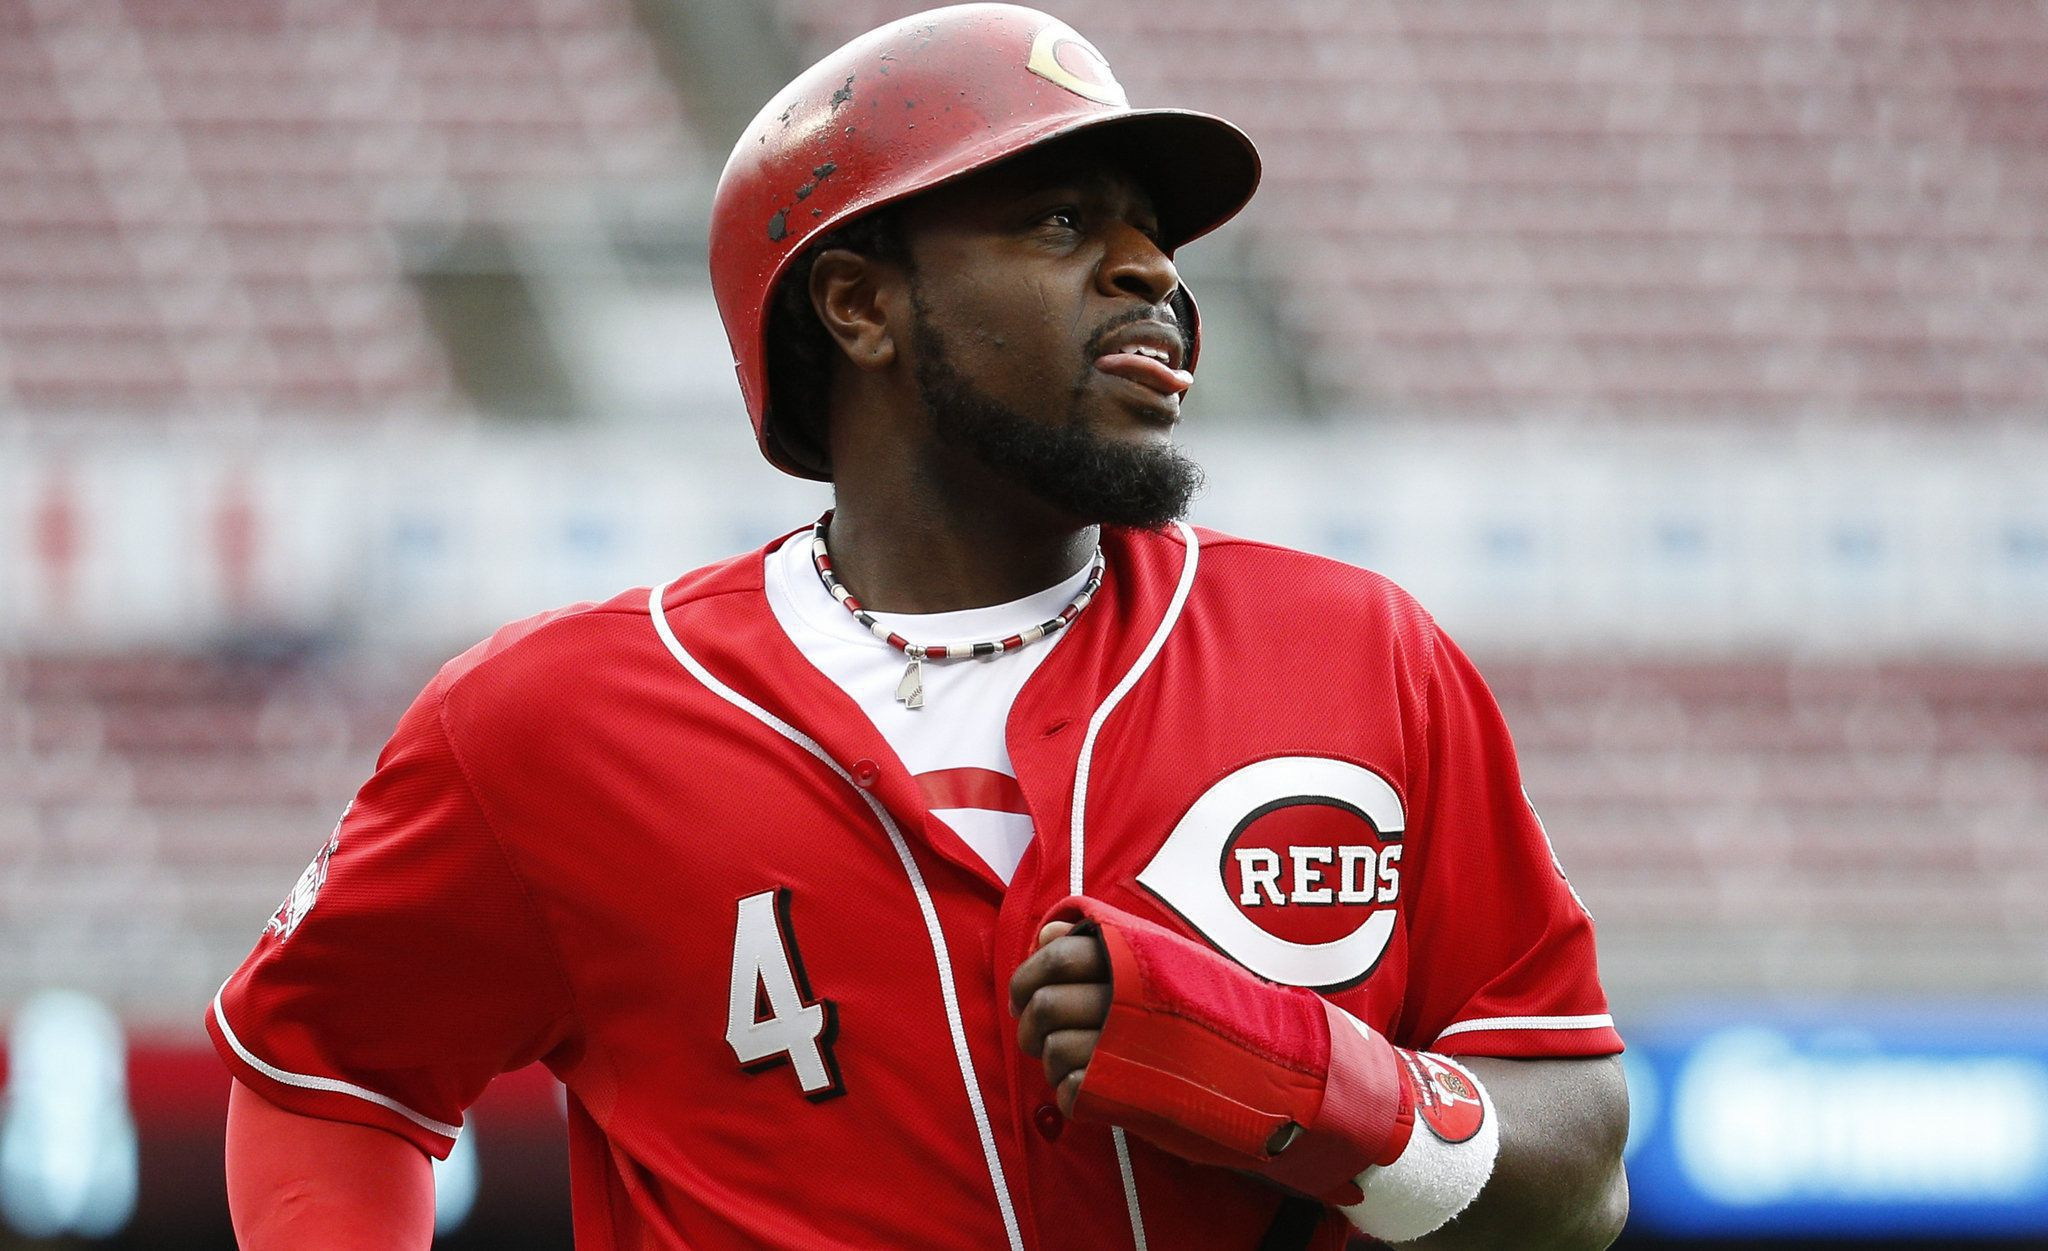 Brandon Phillips Pictures